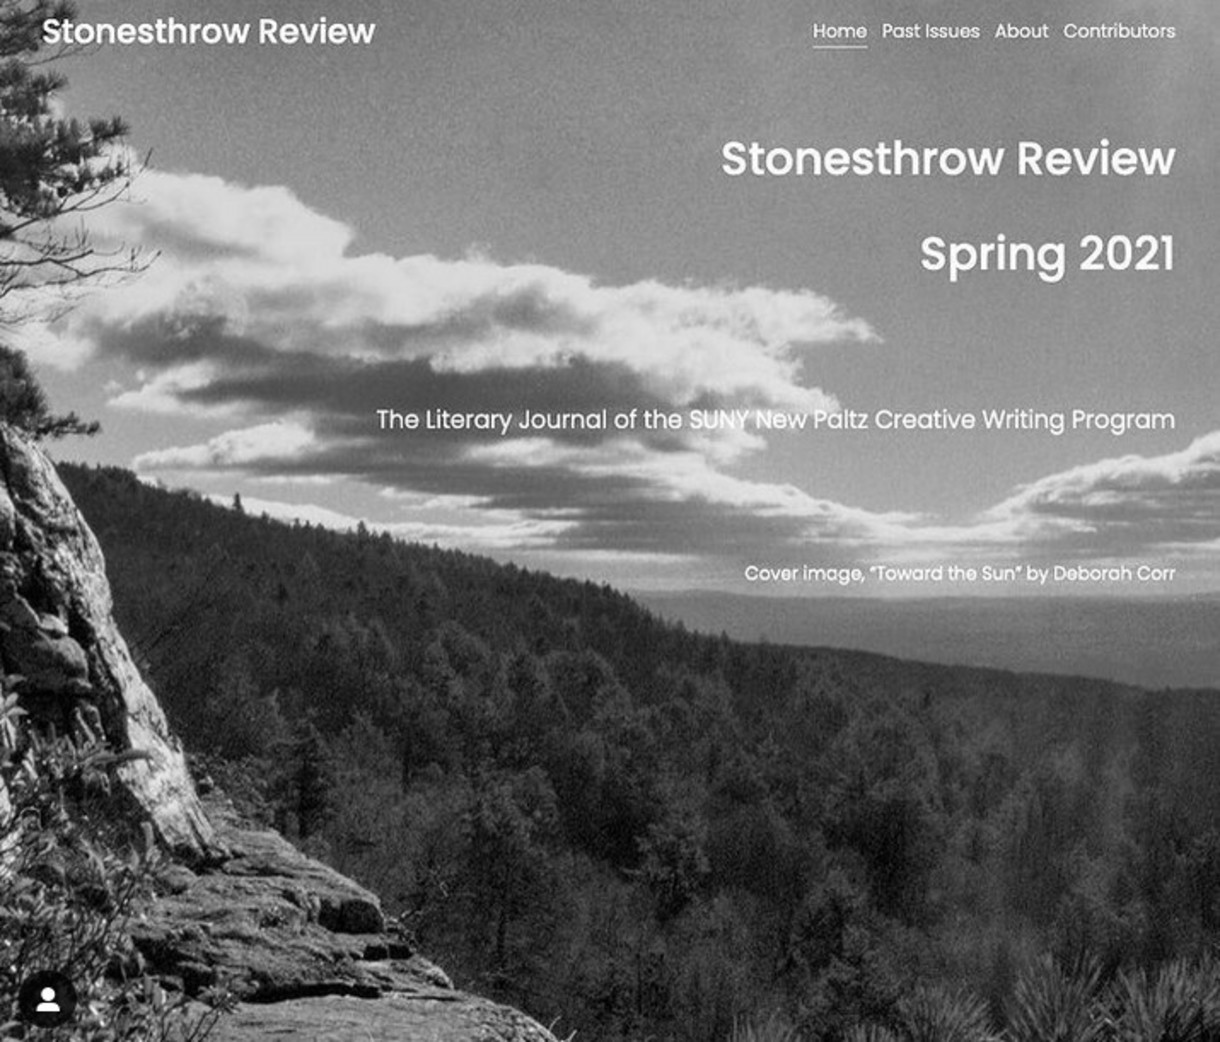 Stonesthrow Review